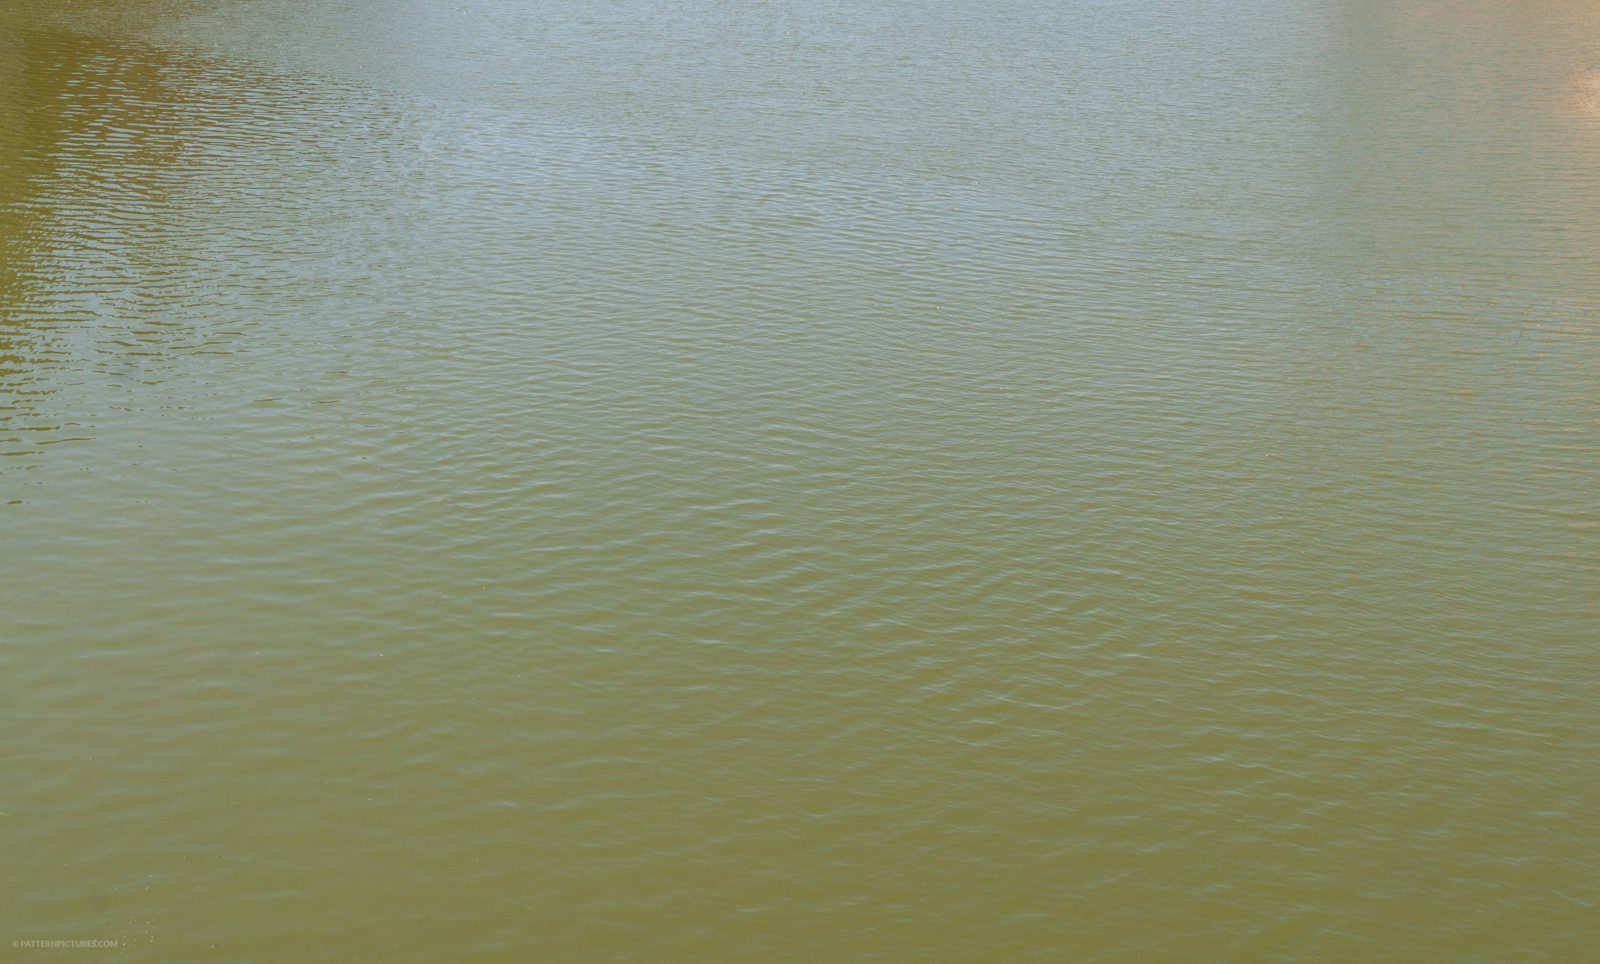 Green water calm surface